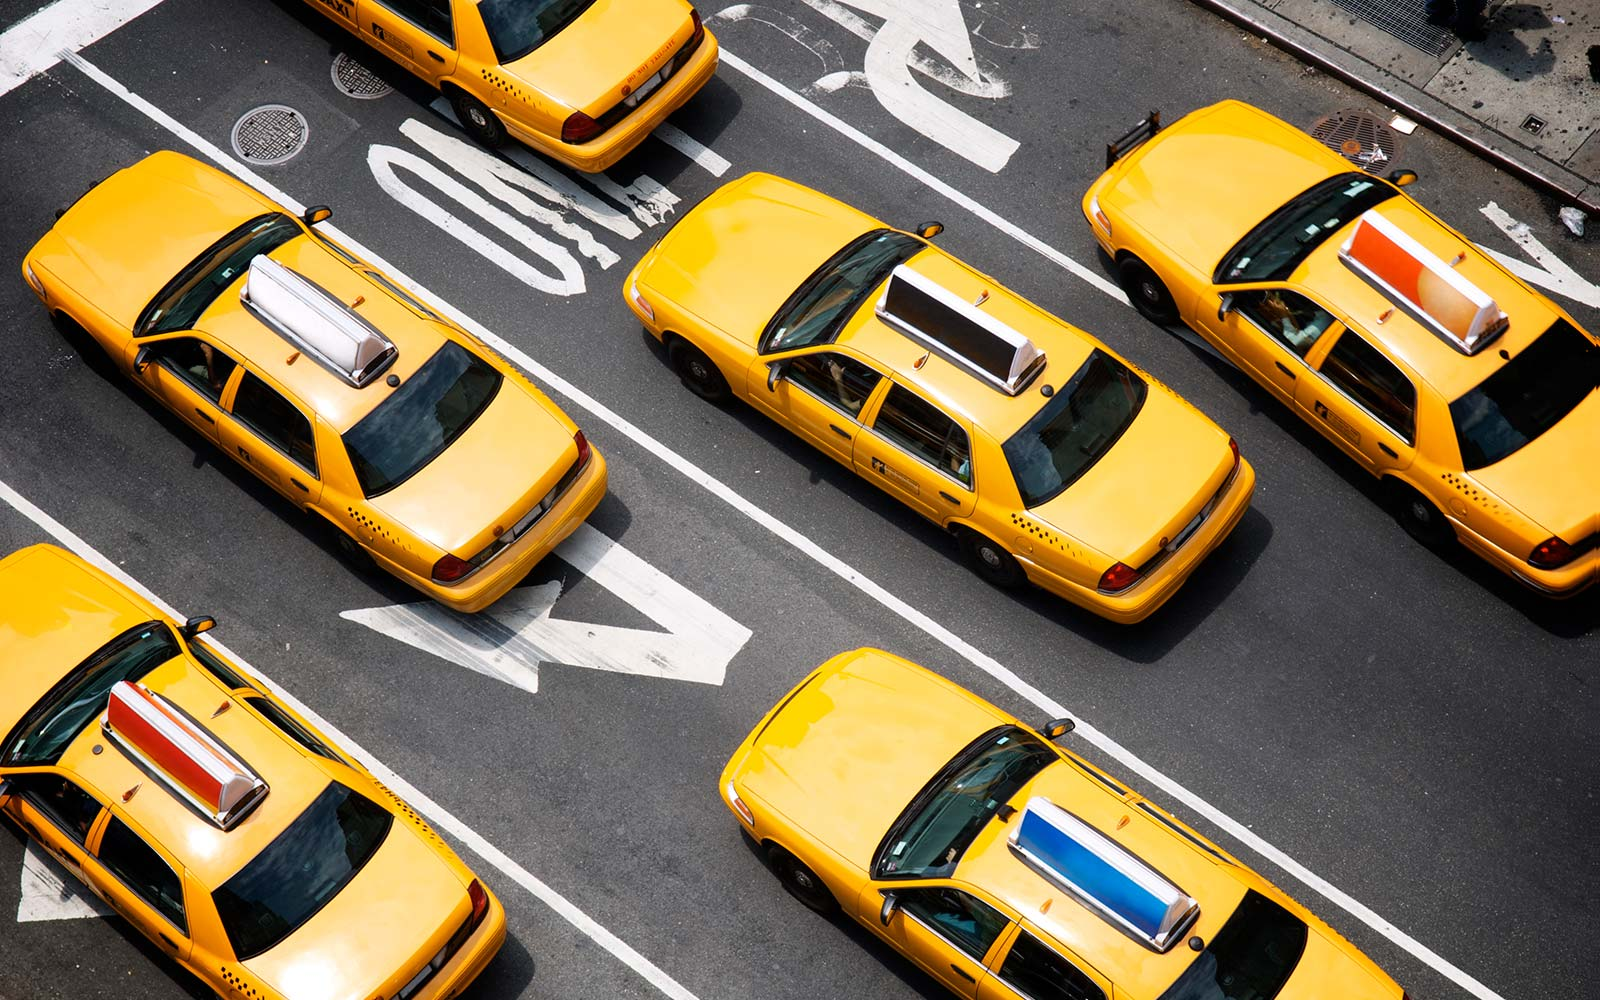 Why are taxi cabs yellow?